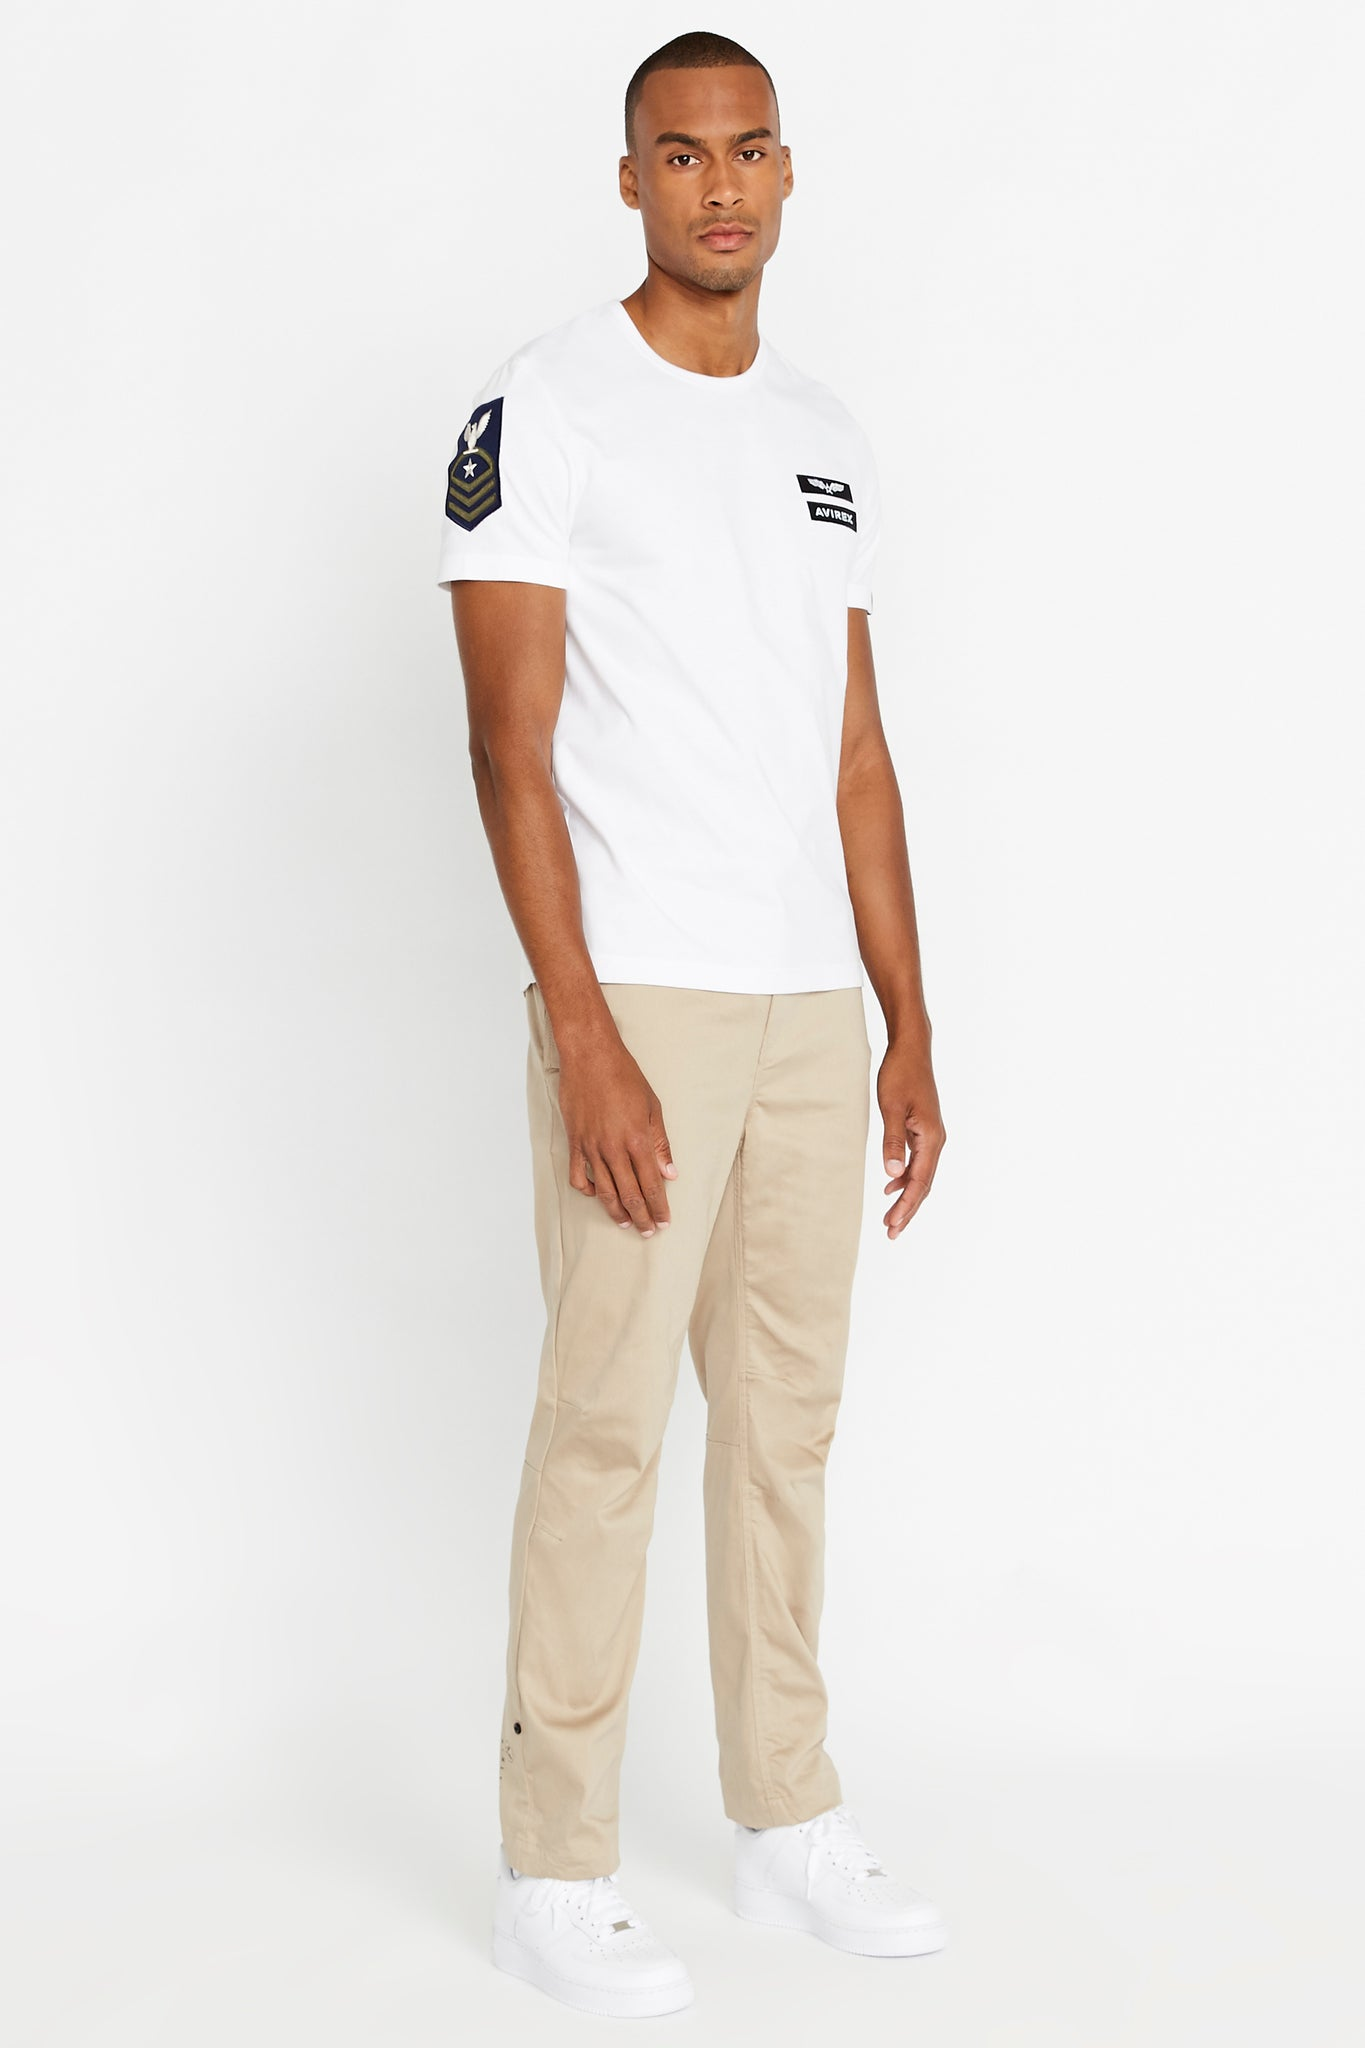 Full view of men wearing a white short sleeve crew T-shirt with Avirex logo and letters patches on left chest and light beige pants